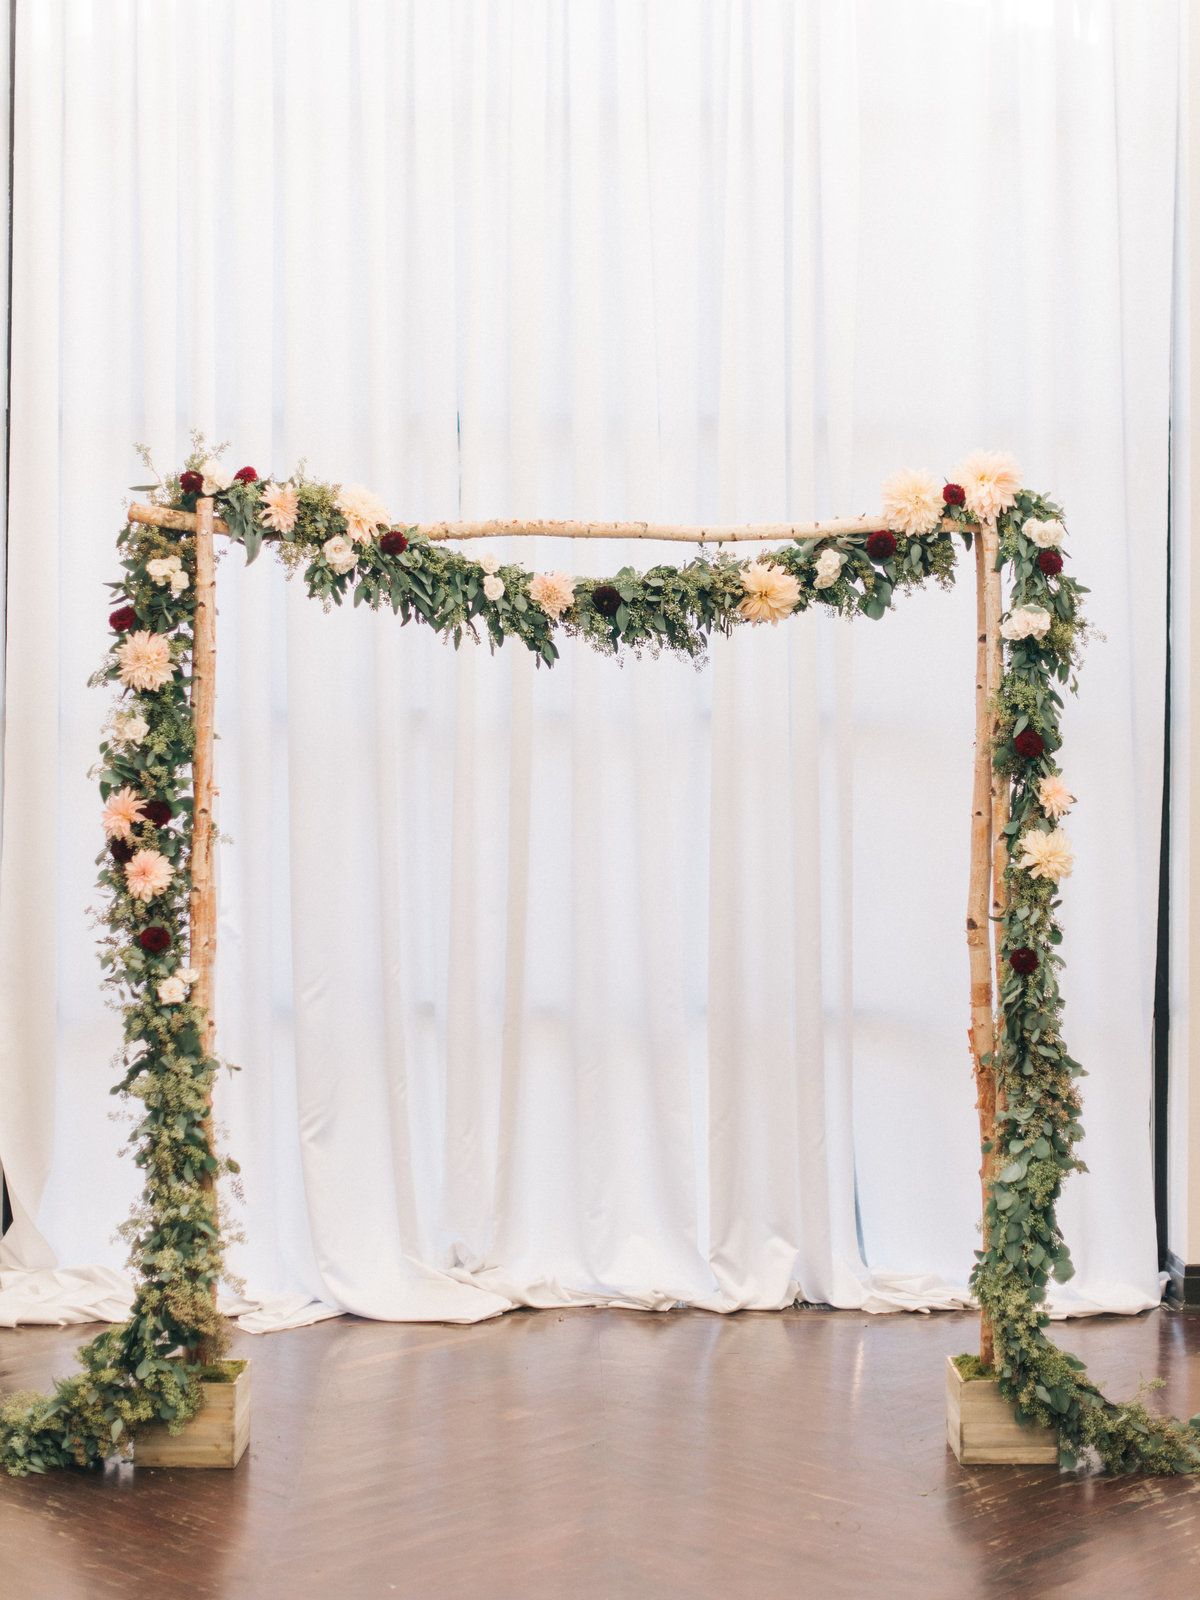 Life in Bloom Best Chicago Wedding Florist and Event Designers 19 East11